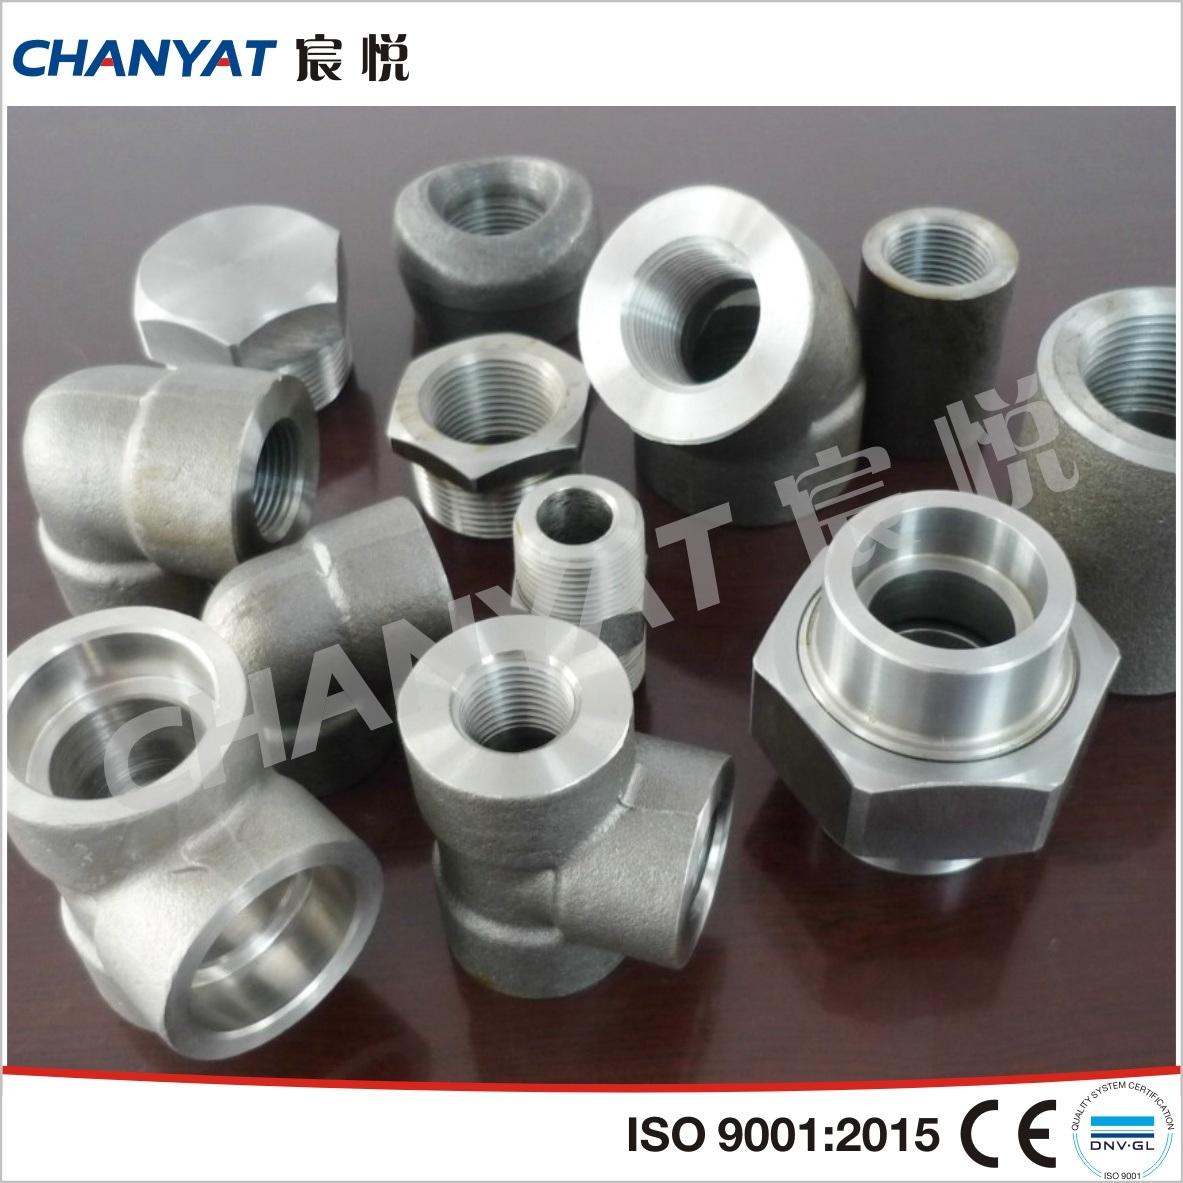 Various Material Forged Fittings (Socket Weld Fittings & Threaded Fittings)